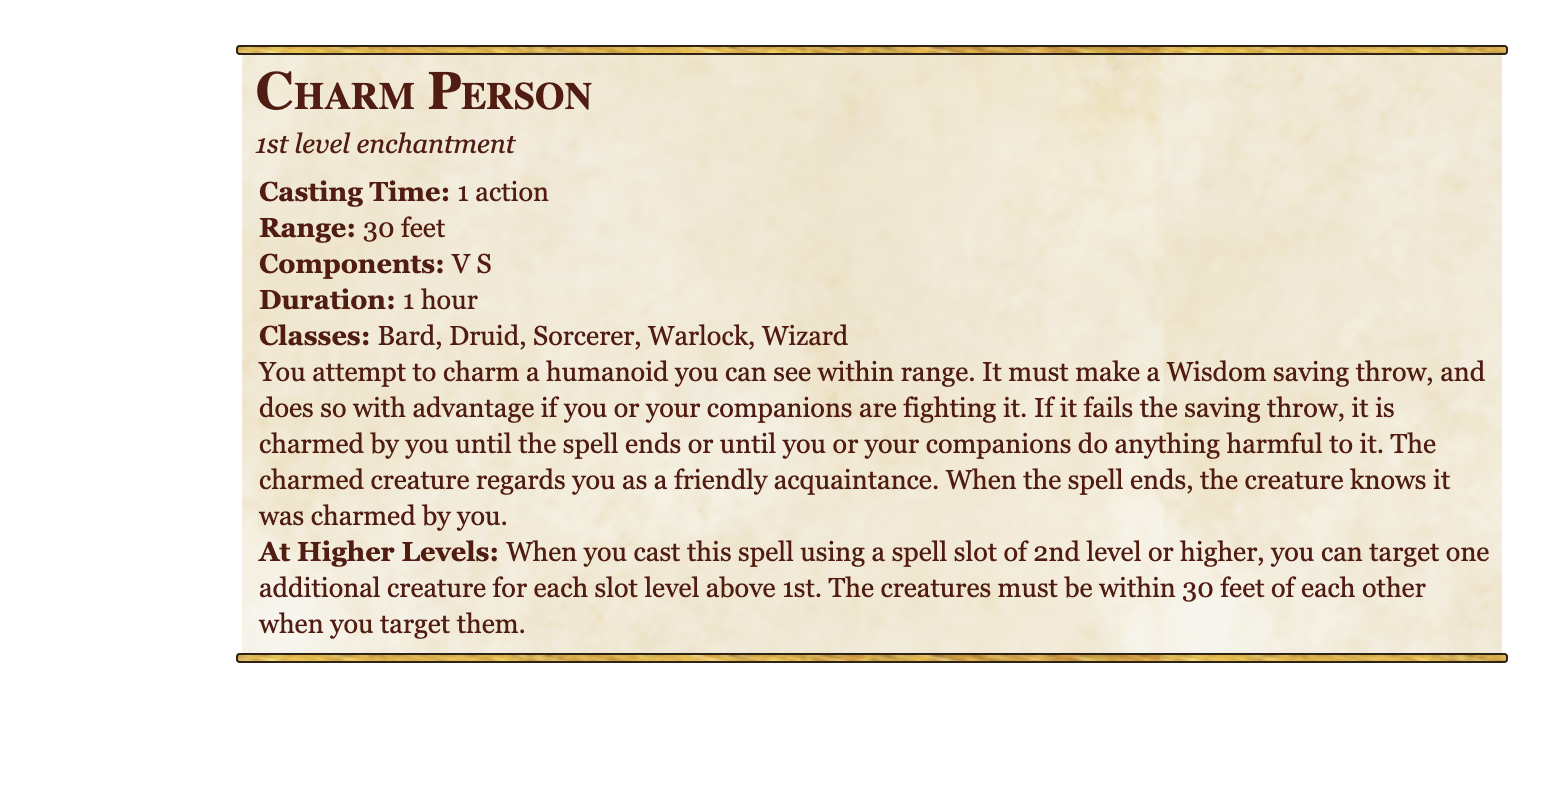 Criminal Background 5th edition dnd